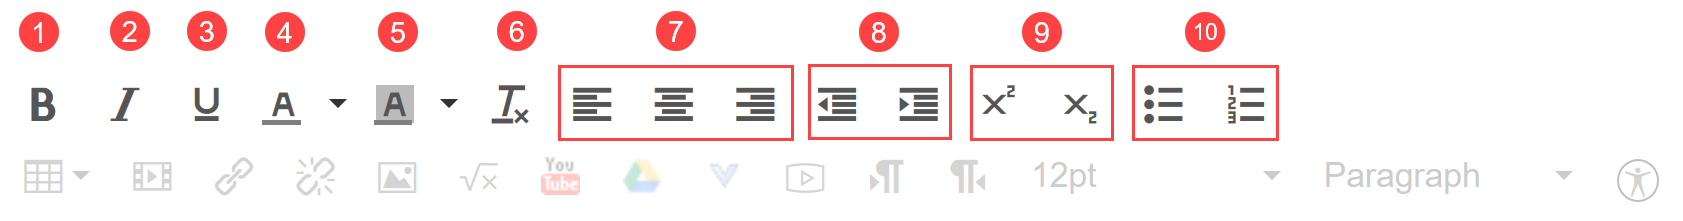 Rich content editor toolbar's 1st row of options